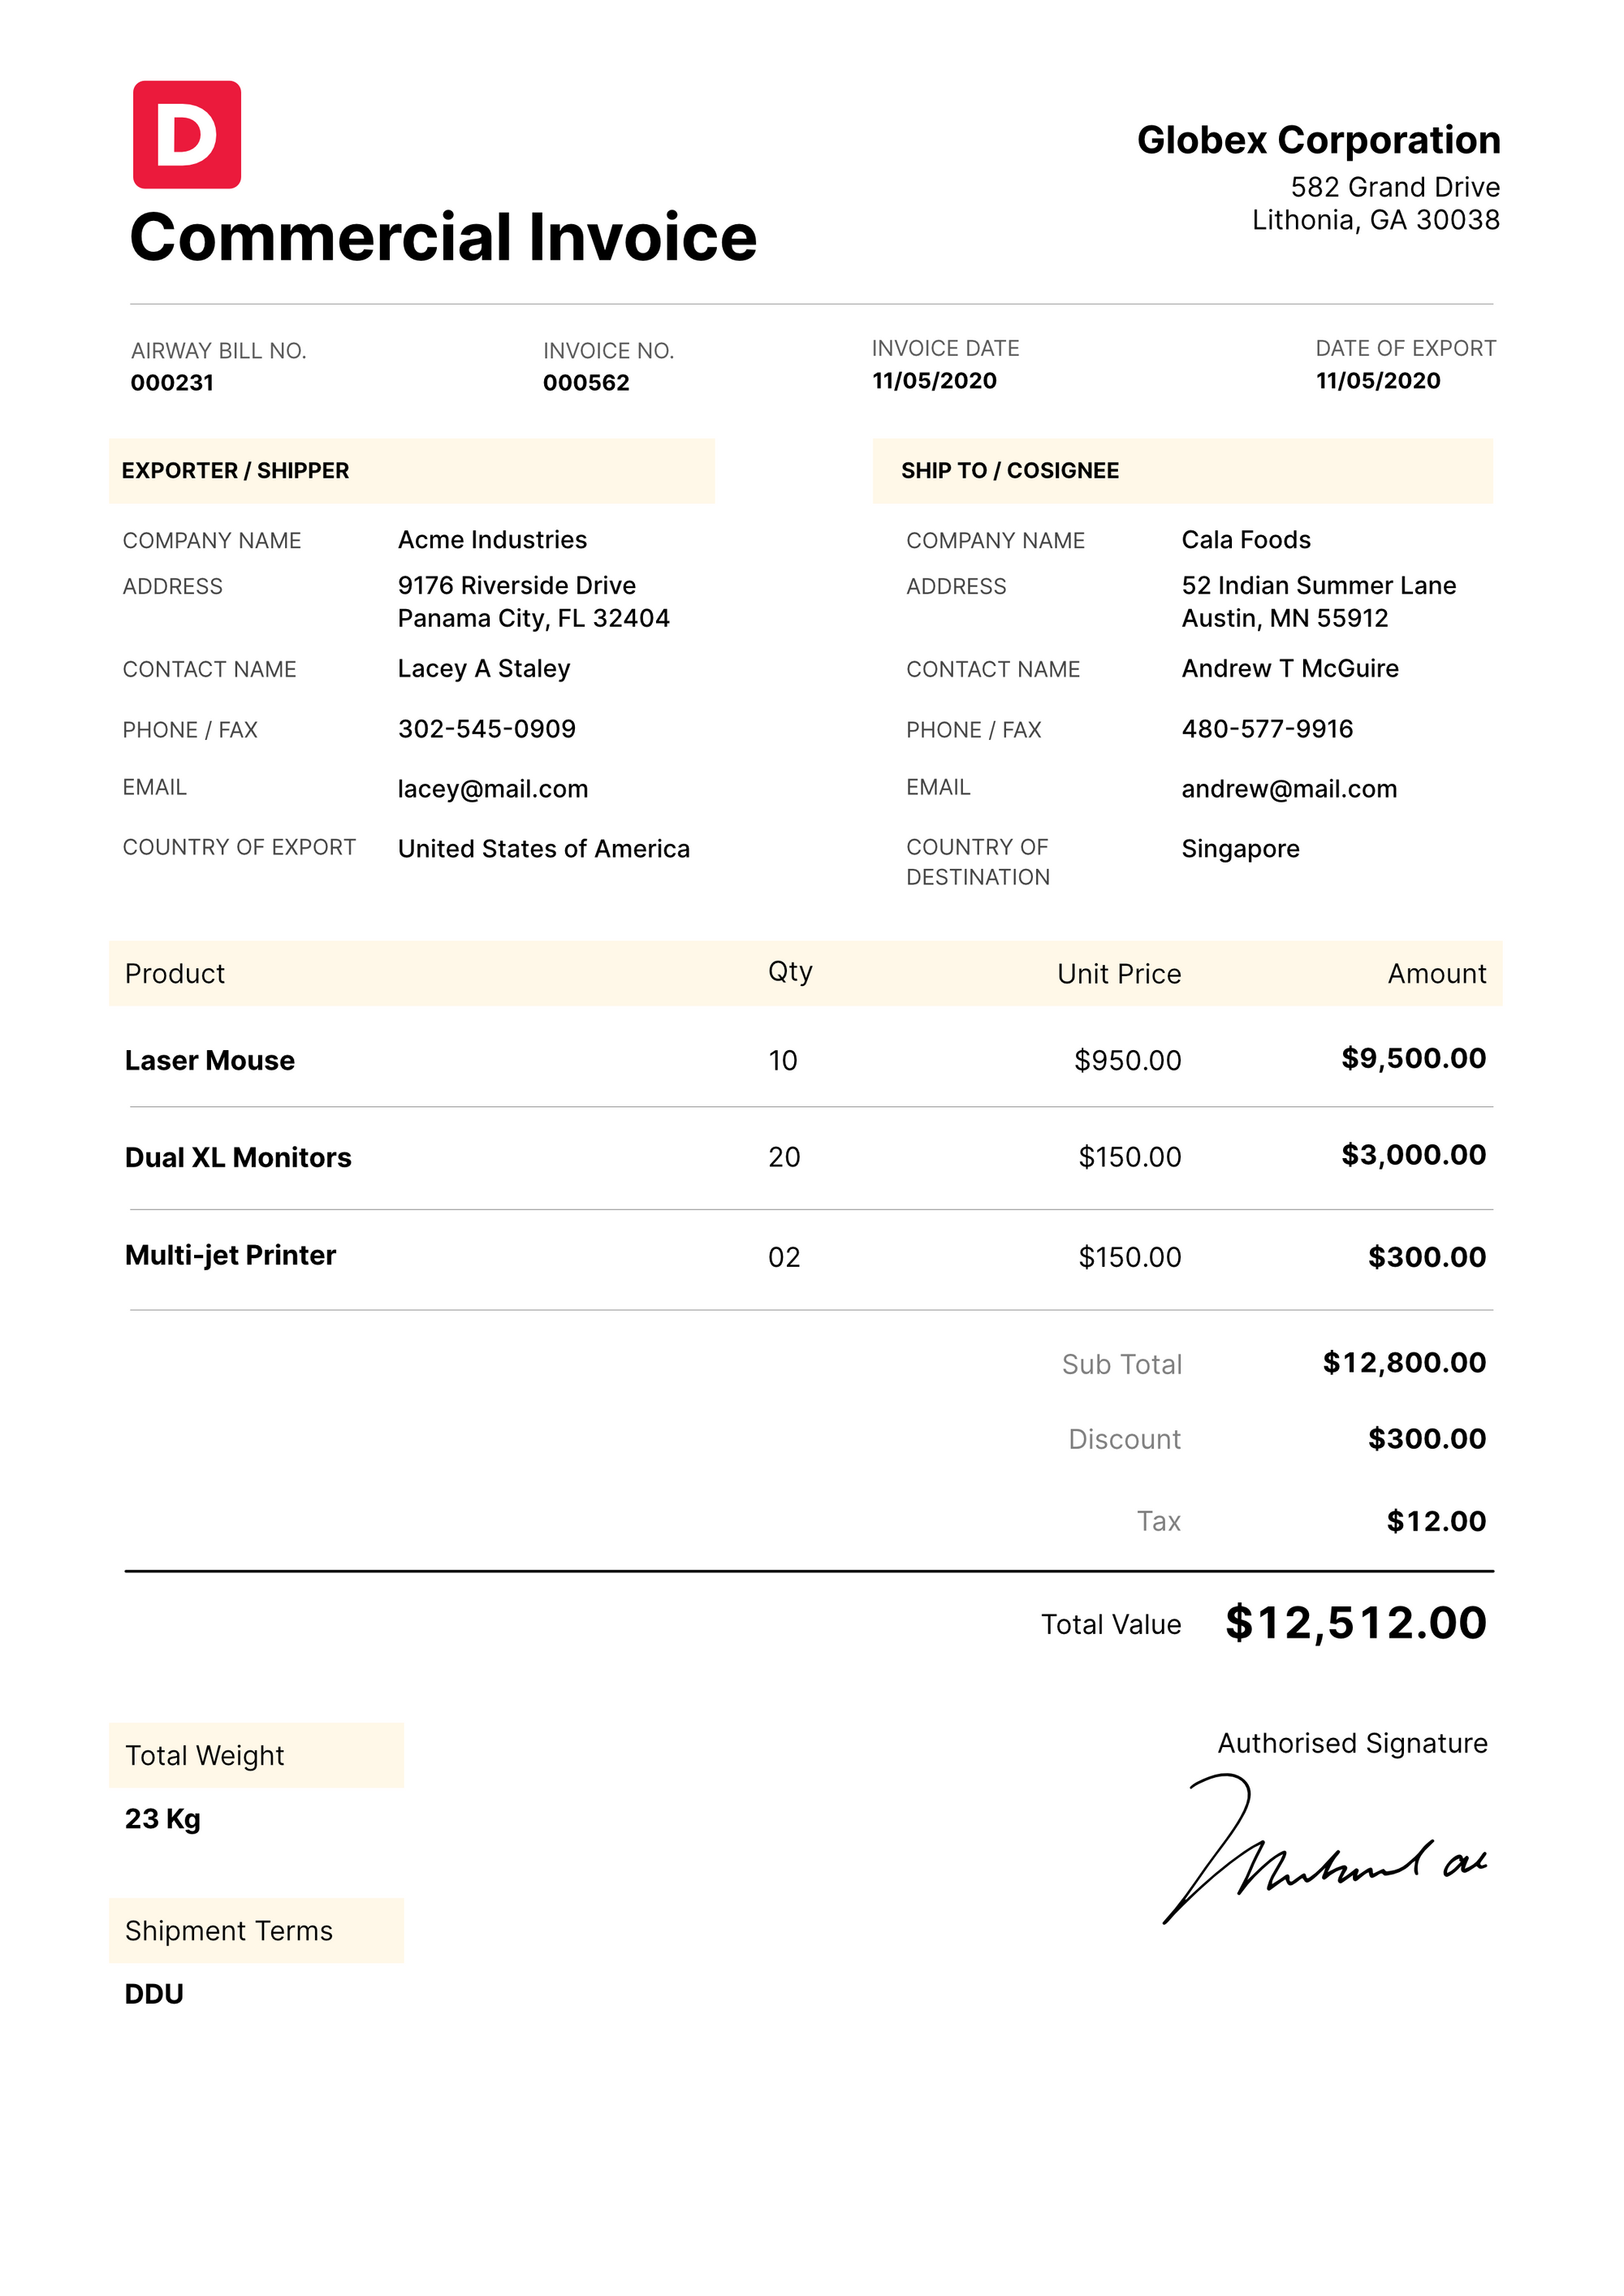 Commercial Invoice Example - What is an Invoice